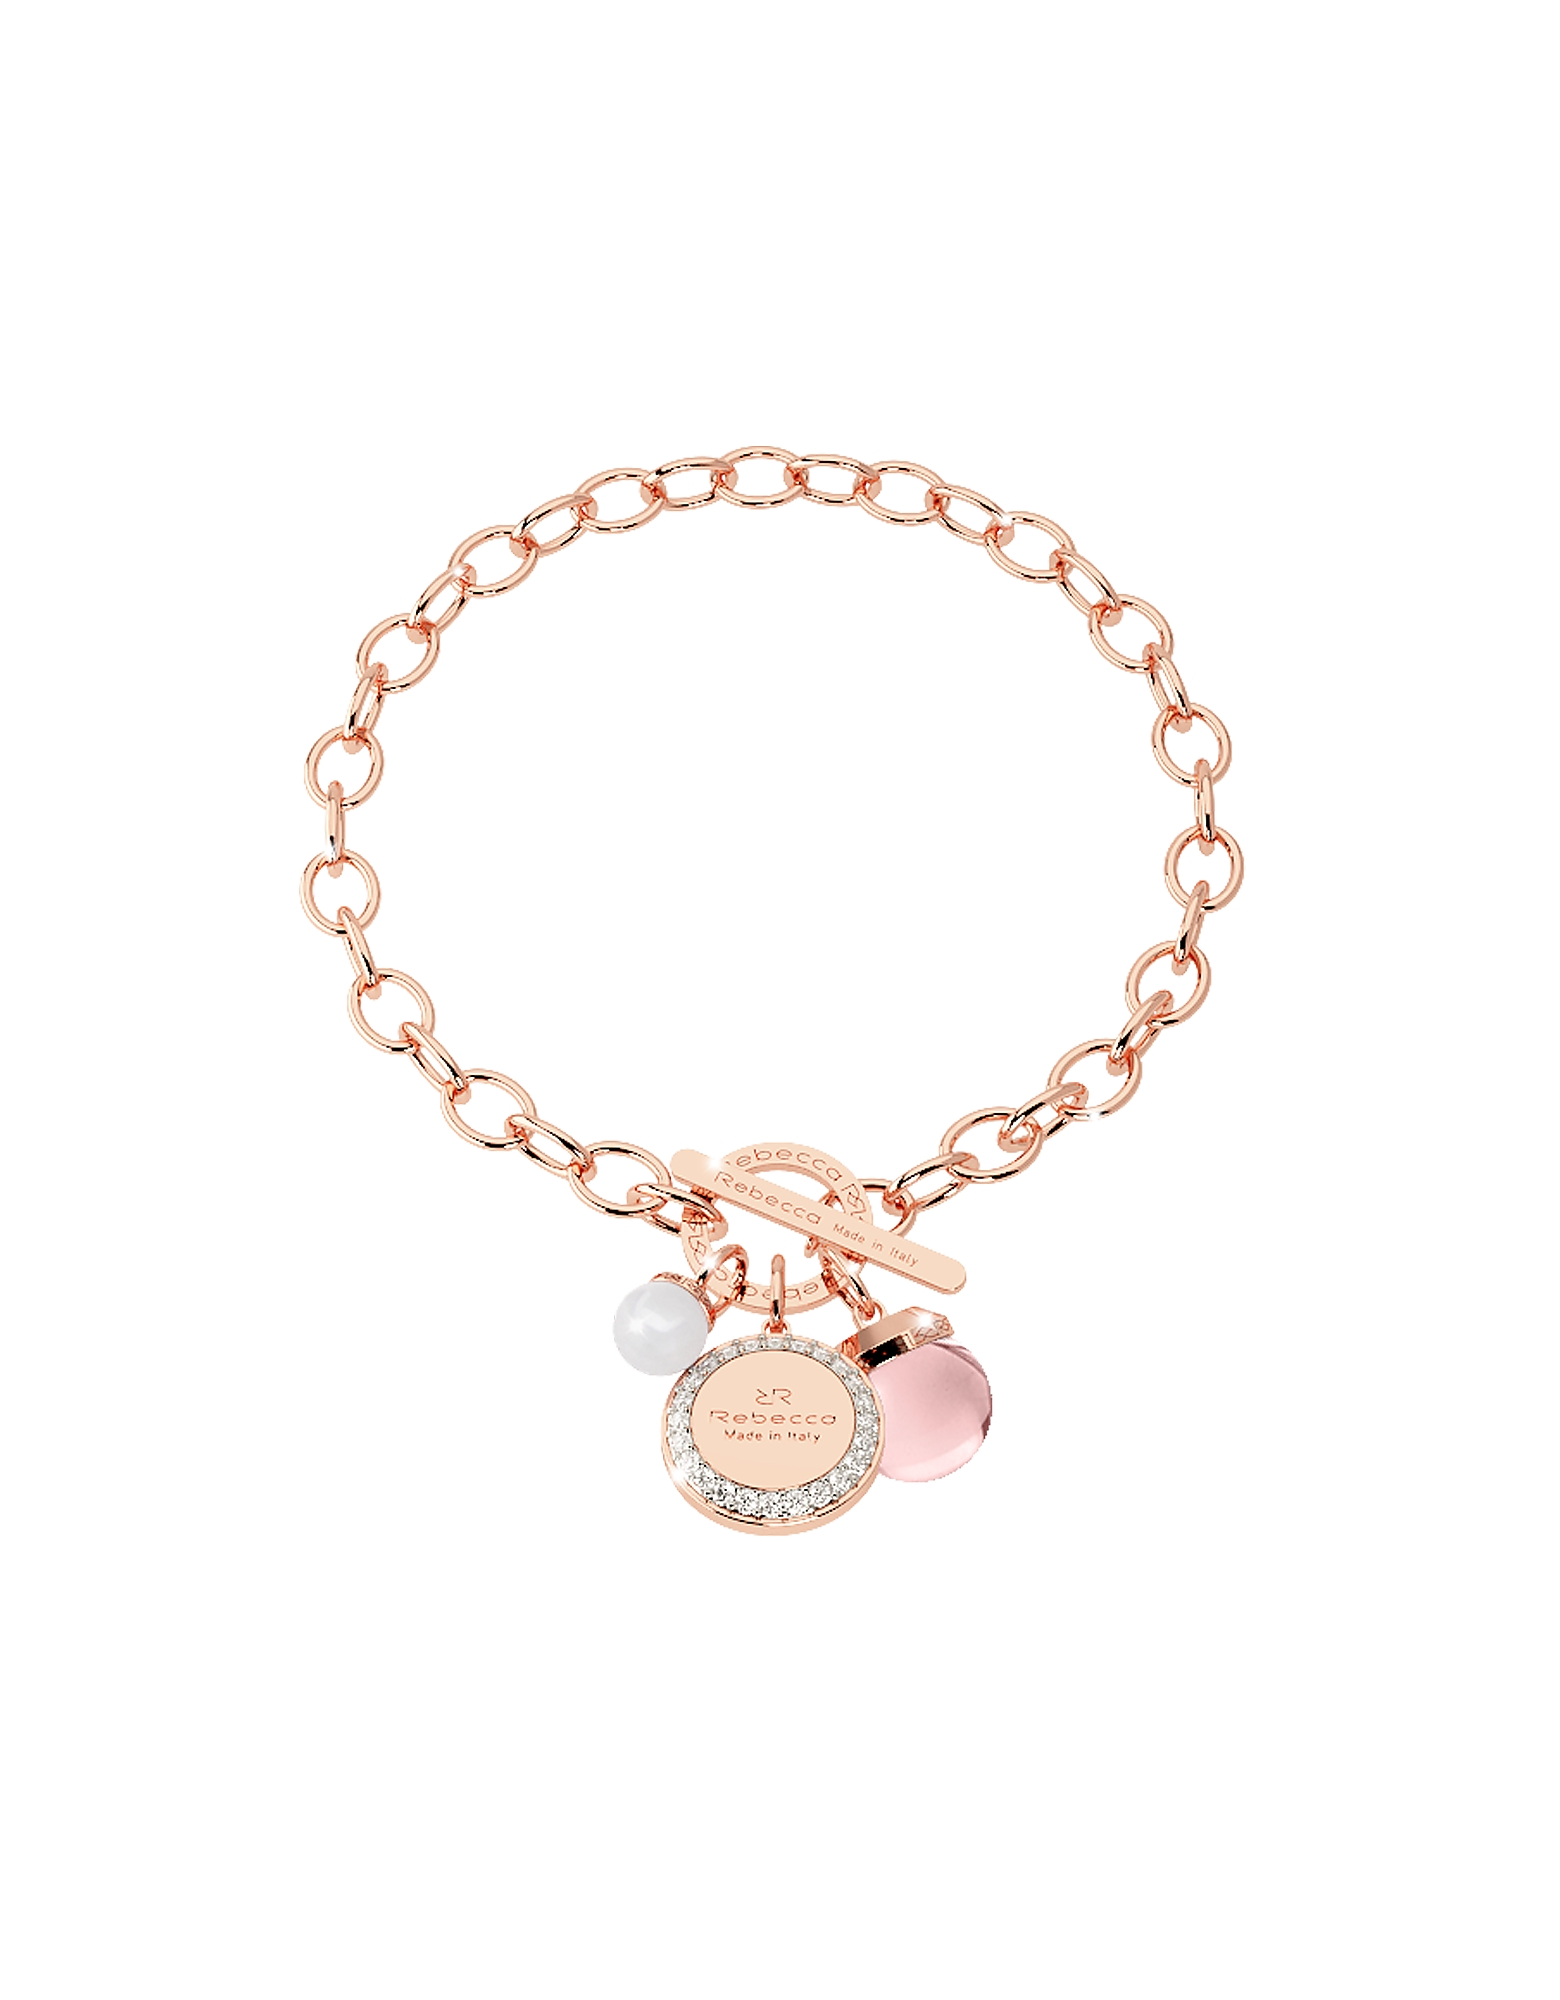 Rebecca Bracelets, Hollywood Stone Rose Gold Over Bronze Chain Bracelet w/Hydrothermal Pink Stone an